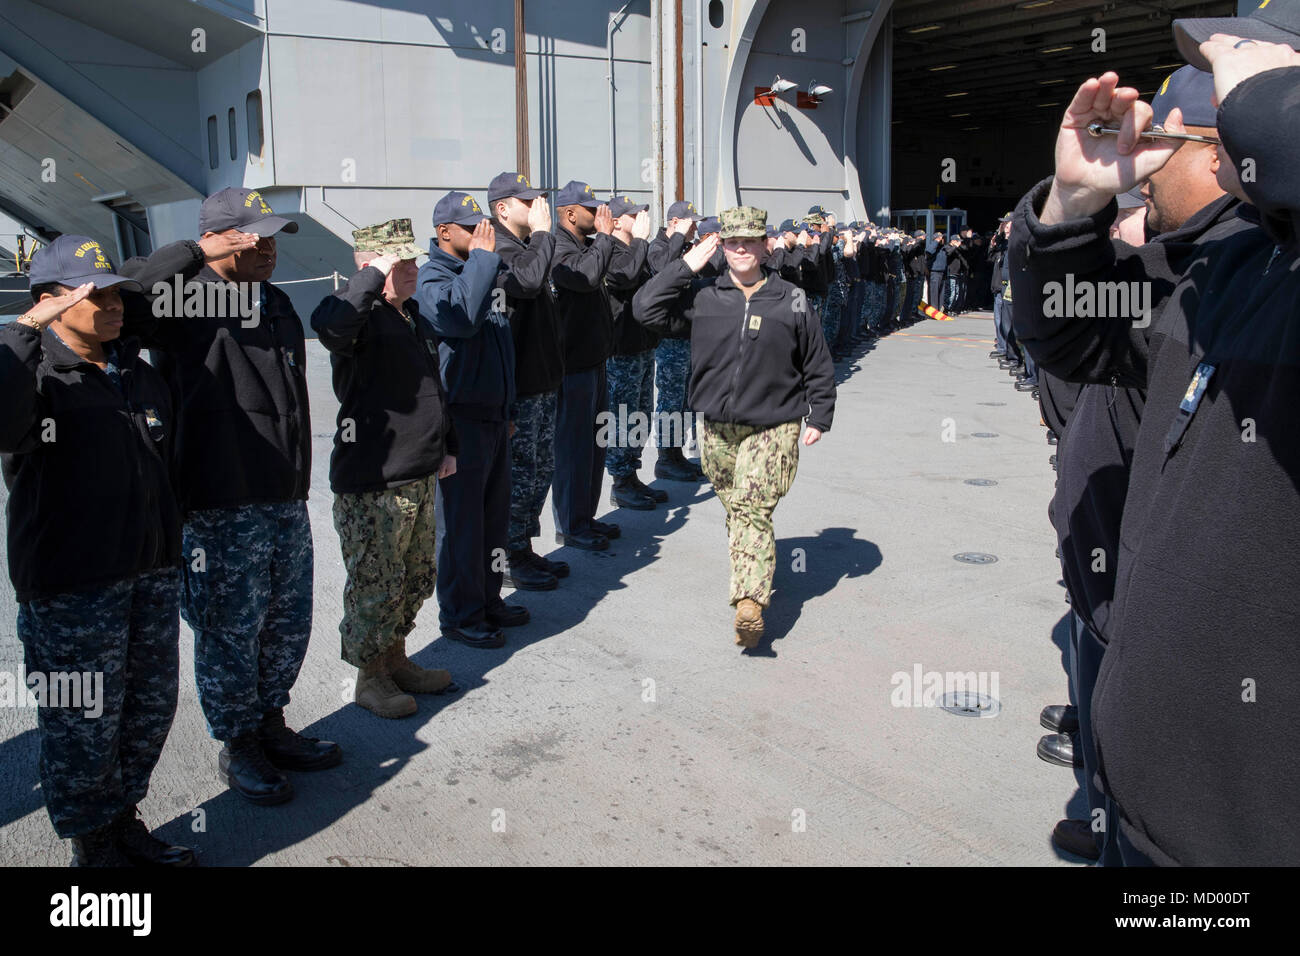 NORFOLK, Va. (Mar. 9, 2018) -- Chief Electrician's Mate (Nuclear) Sarah Gideon returns the salute of USS Gerald R. Ford (CVN 78) Sailors as she departs the command. (U.S. Navy photo by Mass Communication Specialist 3rd Class Joshua Murray) - Stock Image